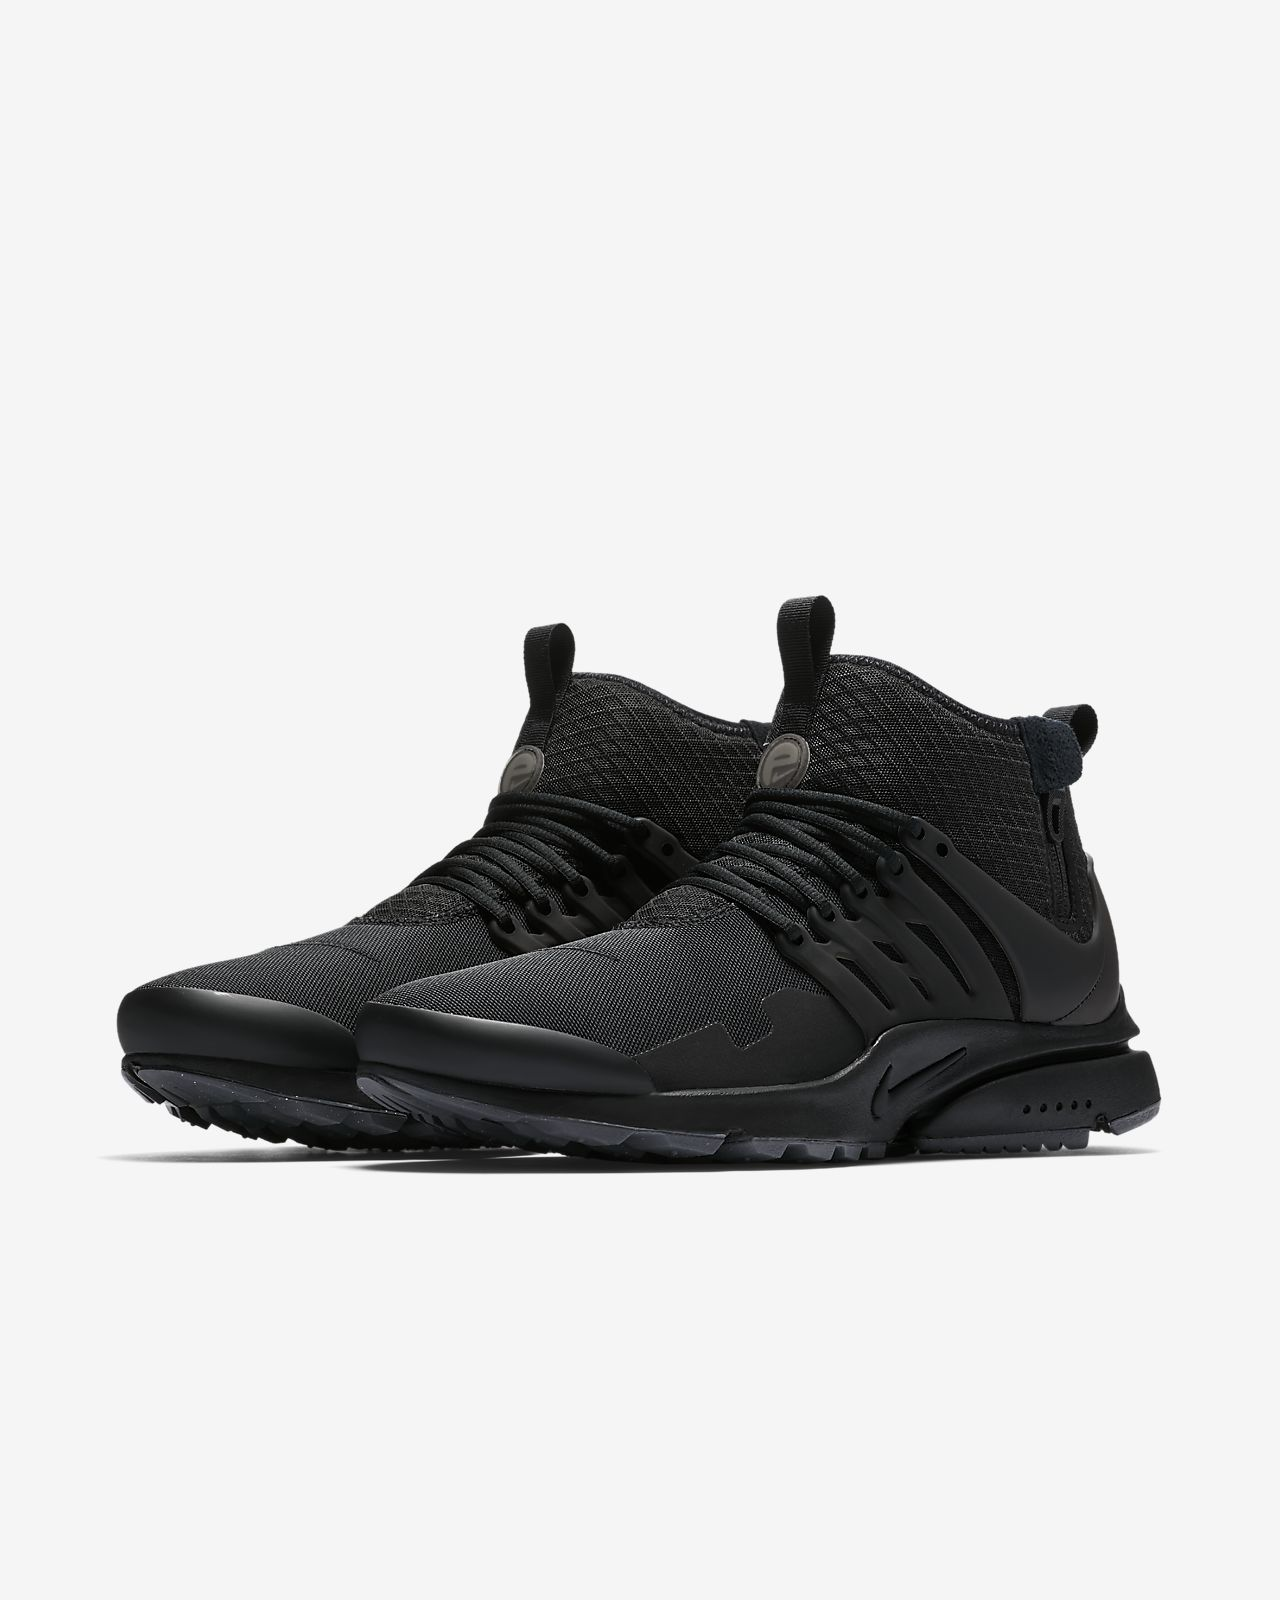 Nike - Air Presto Utility Black - Sneakers Man - 41 EU